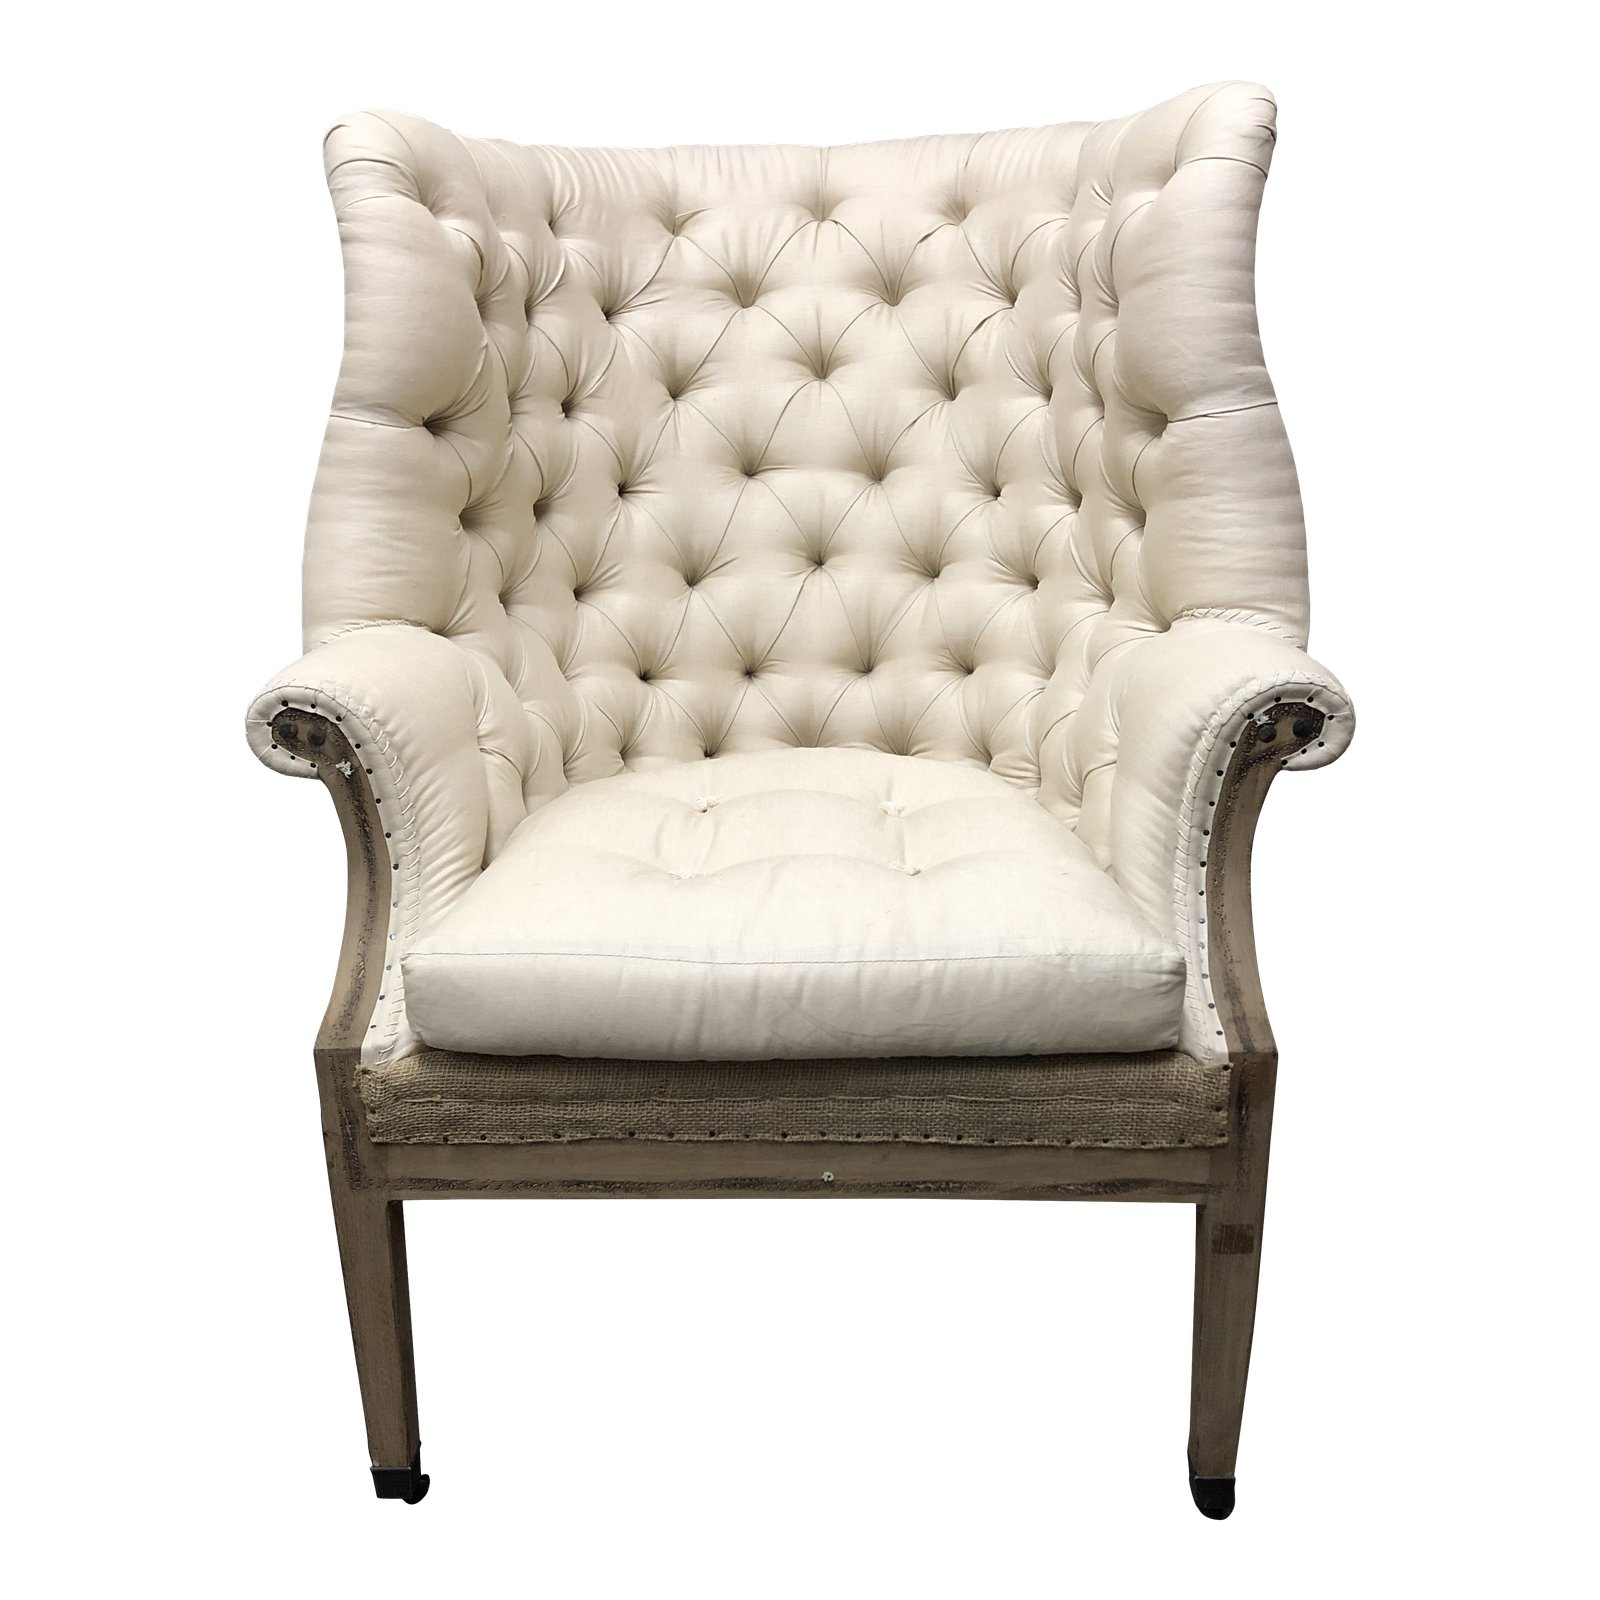 Restoration Hardware Deconstructed 19th C English Wingback Chair